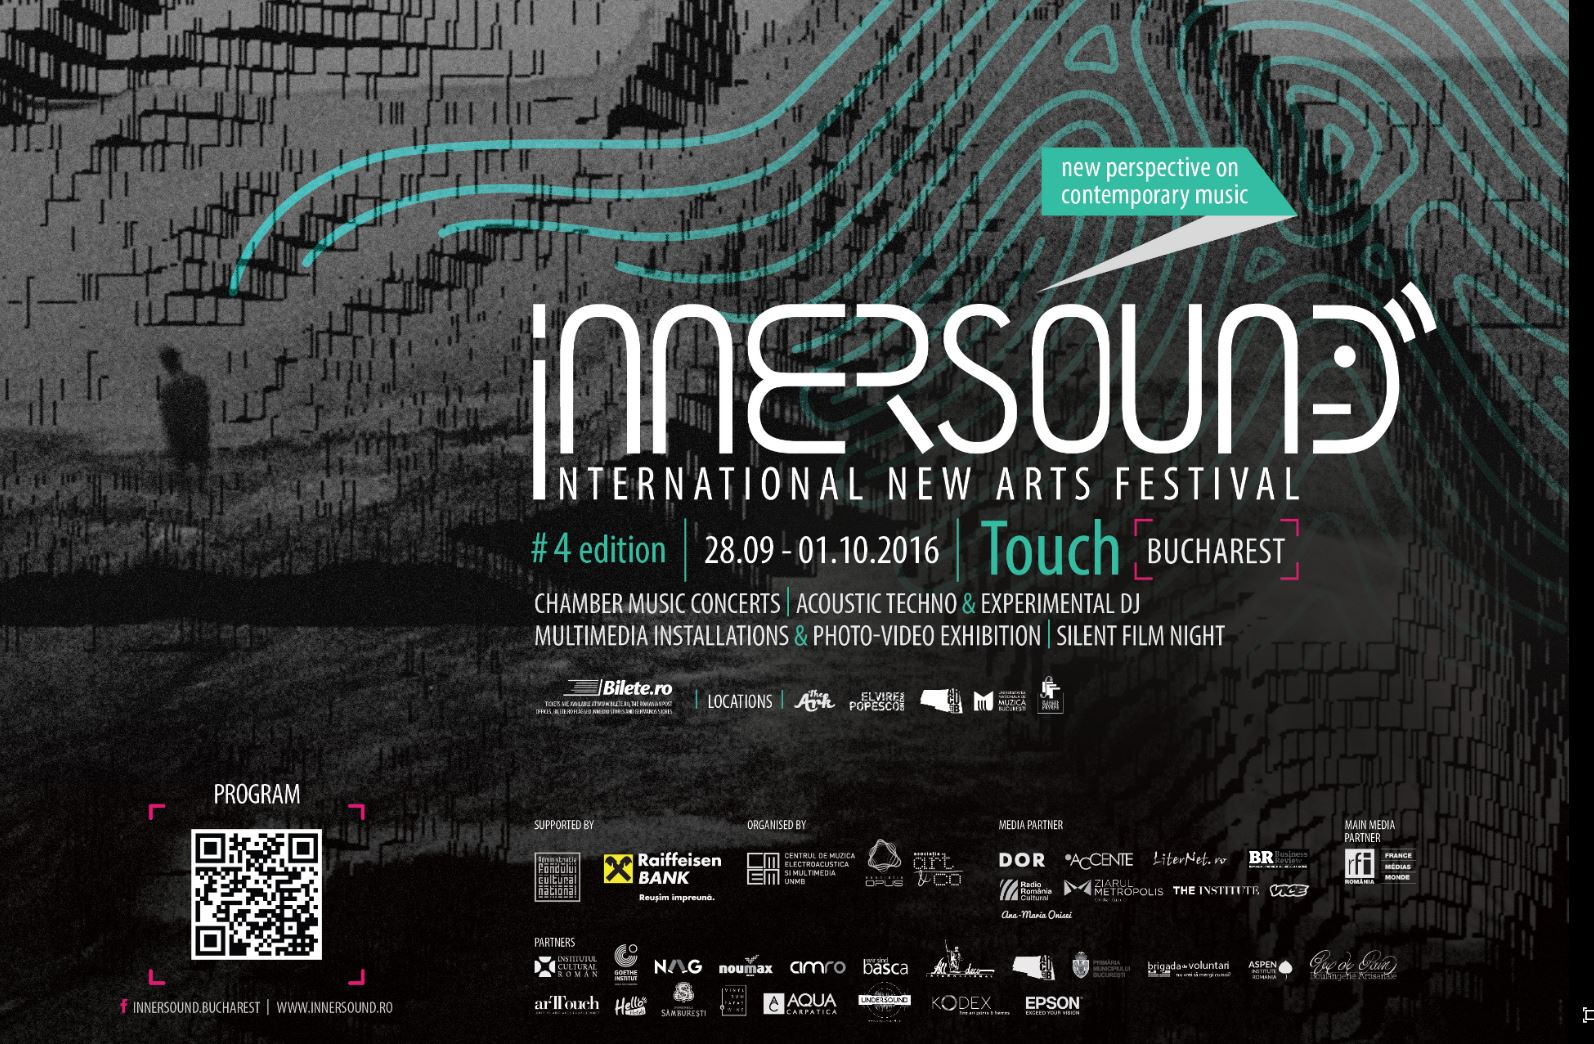 Festivalul International de Arte Noi InnerSound